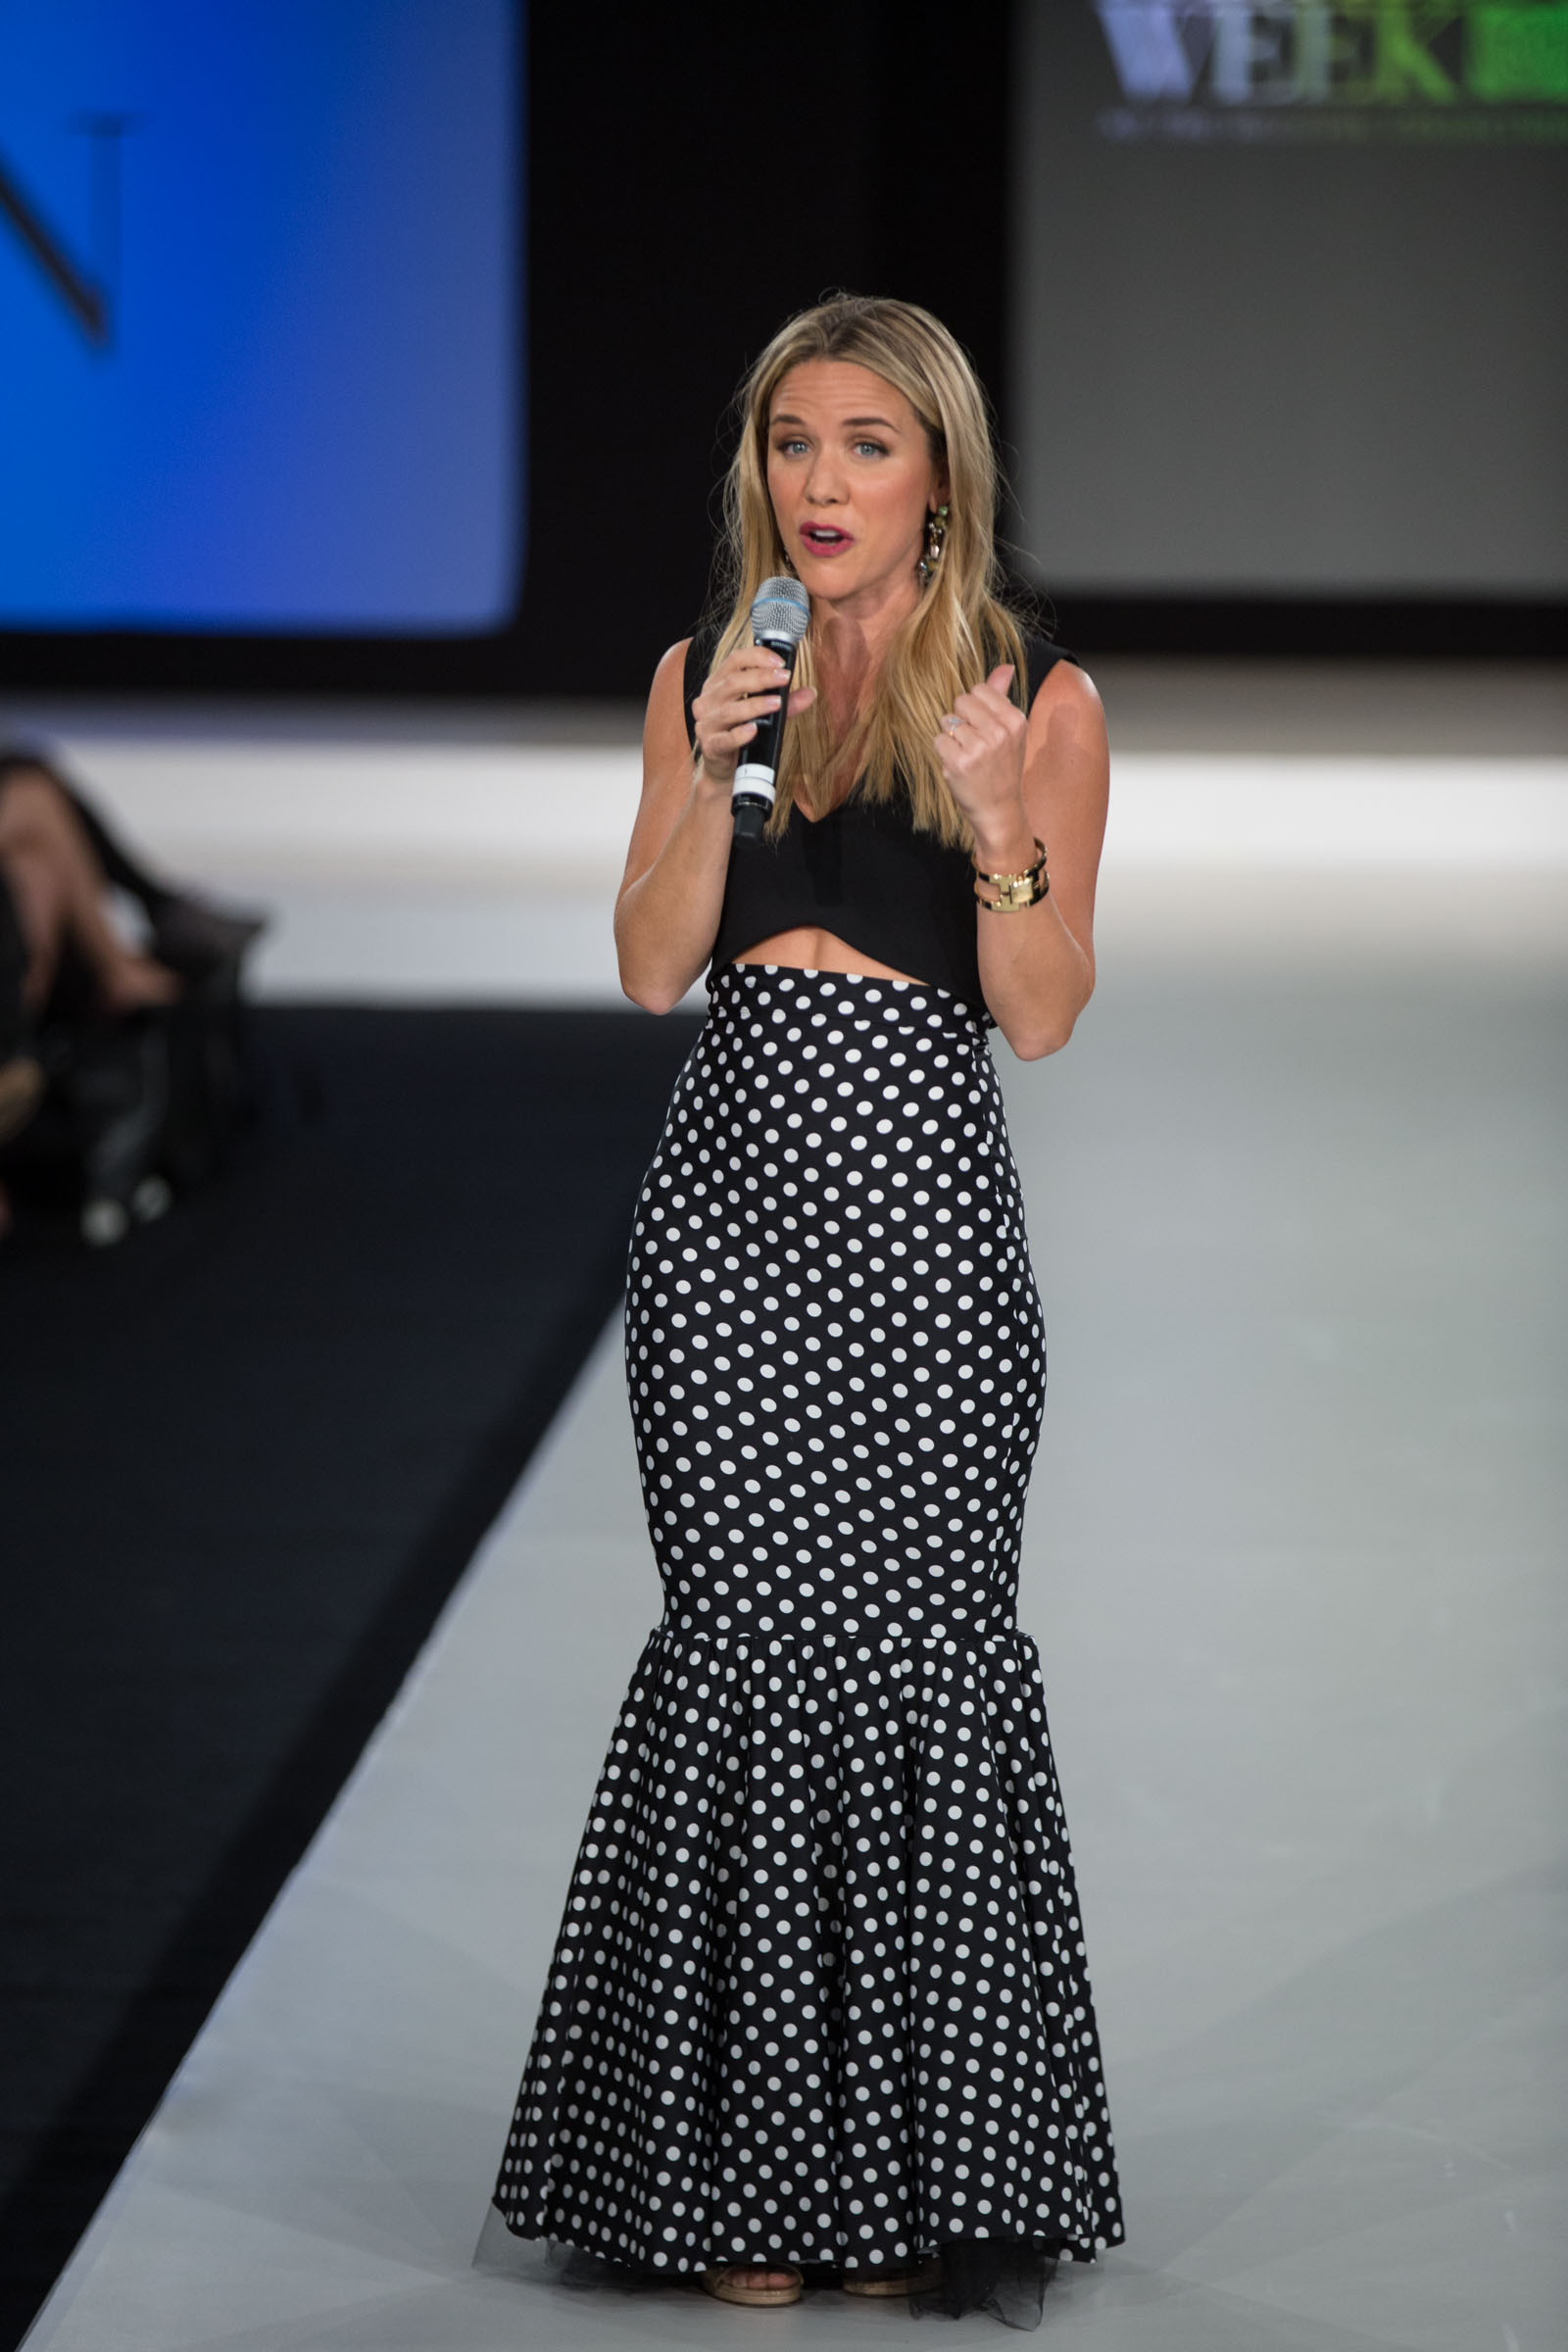 Vogue's Cara Crowley wearing a skirt from IDRS participant Lindsay Moen of Dollstreet.